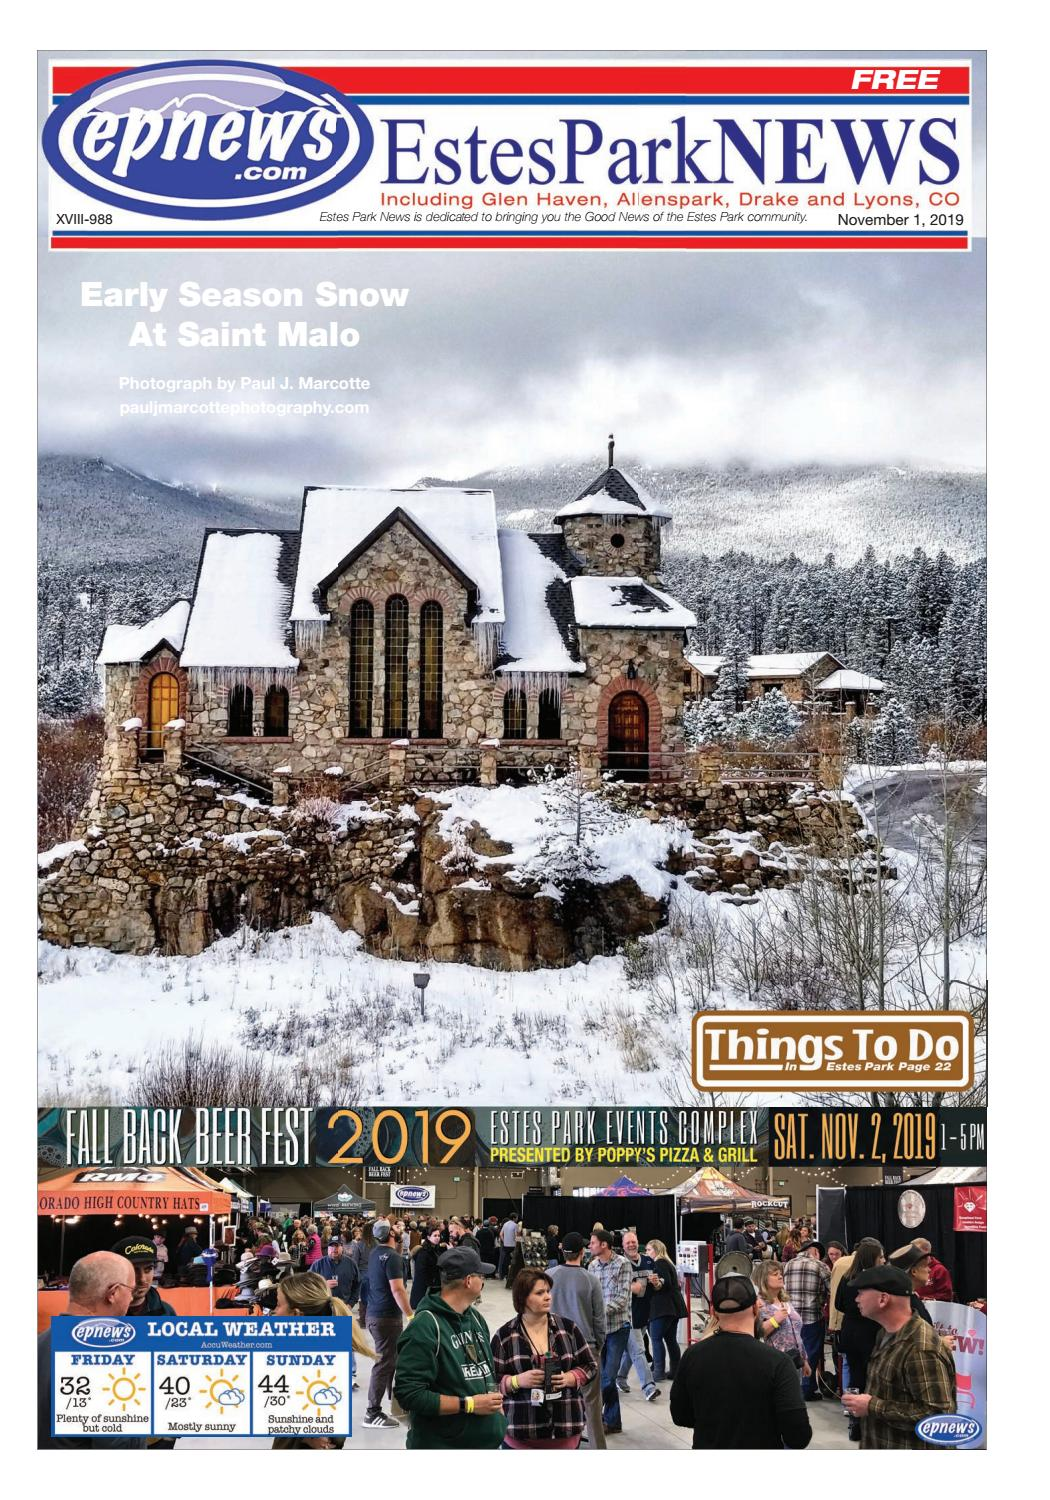 Estes Park News November 1 2019 By Estes Park News Inc Issuu